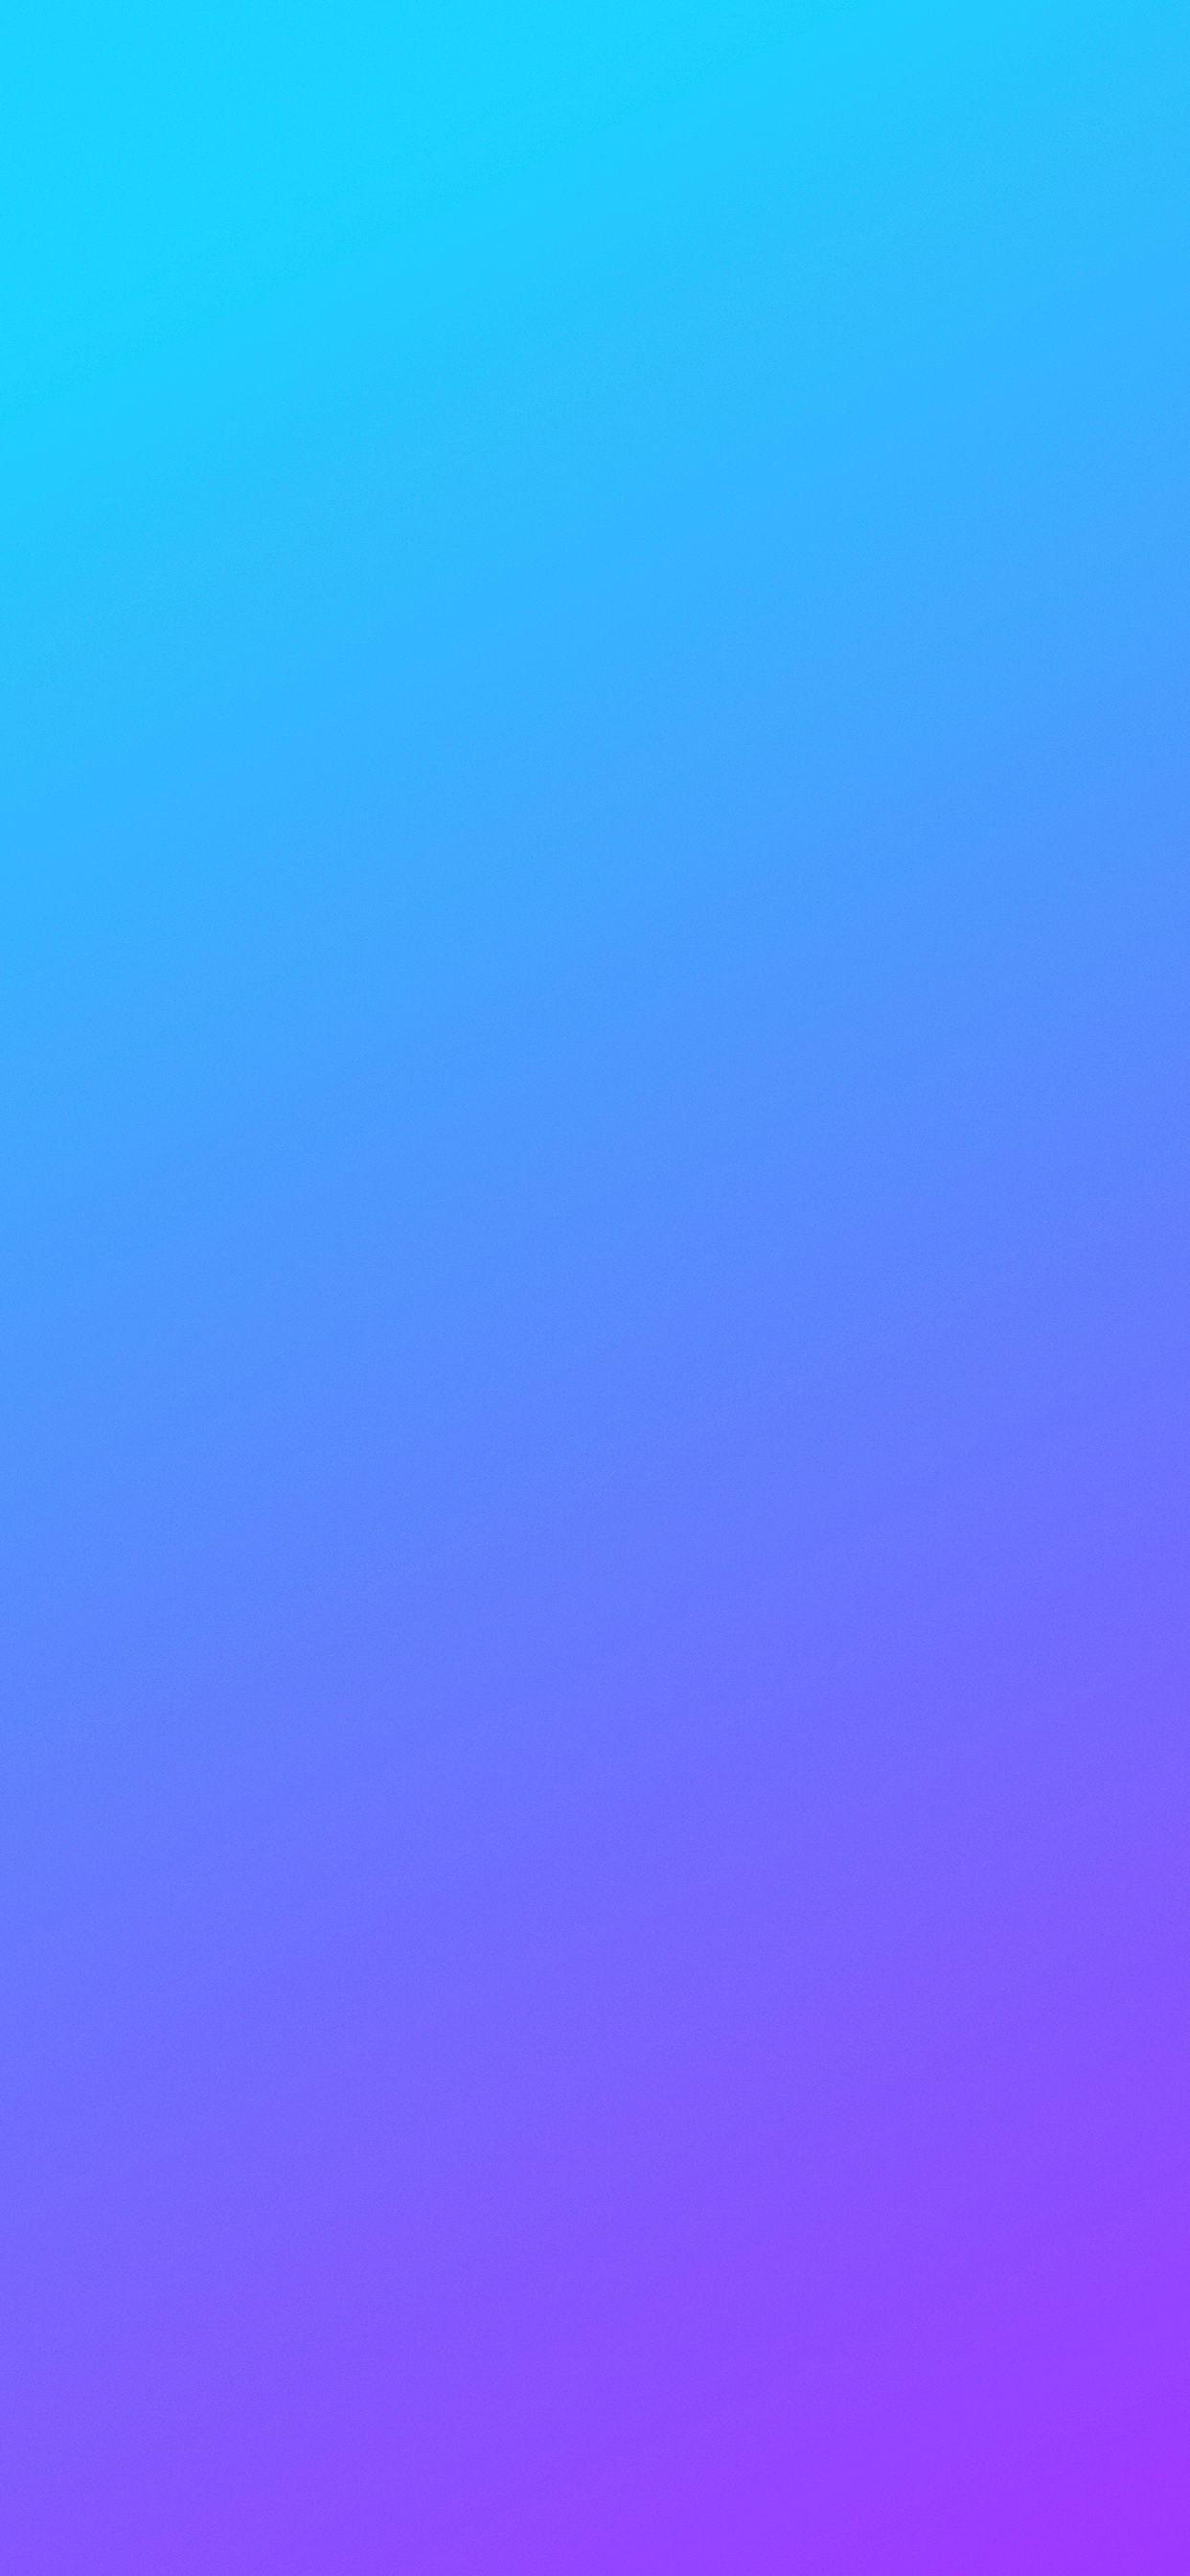 iPhone wallpapers gradient light blue purple Fonds d'écran iPhone du 21/06/2019